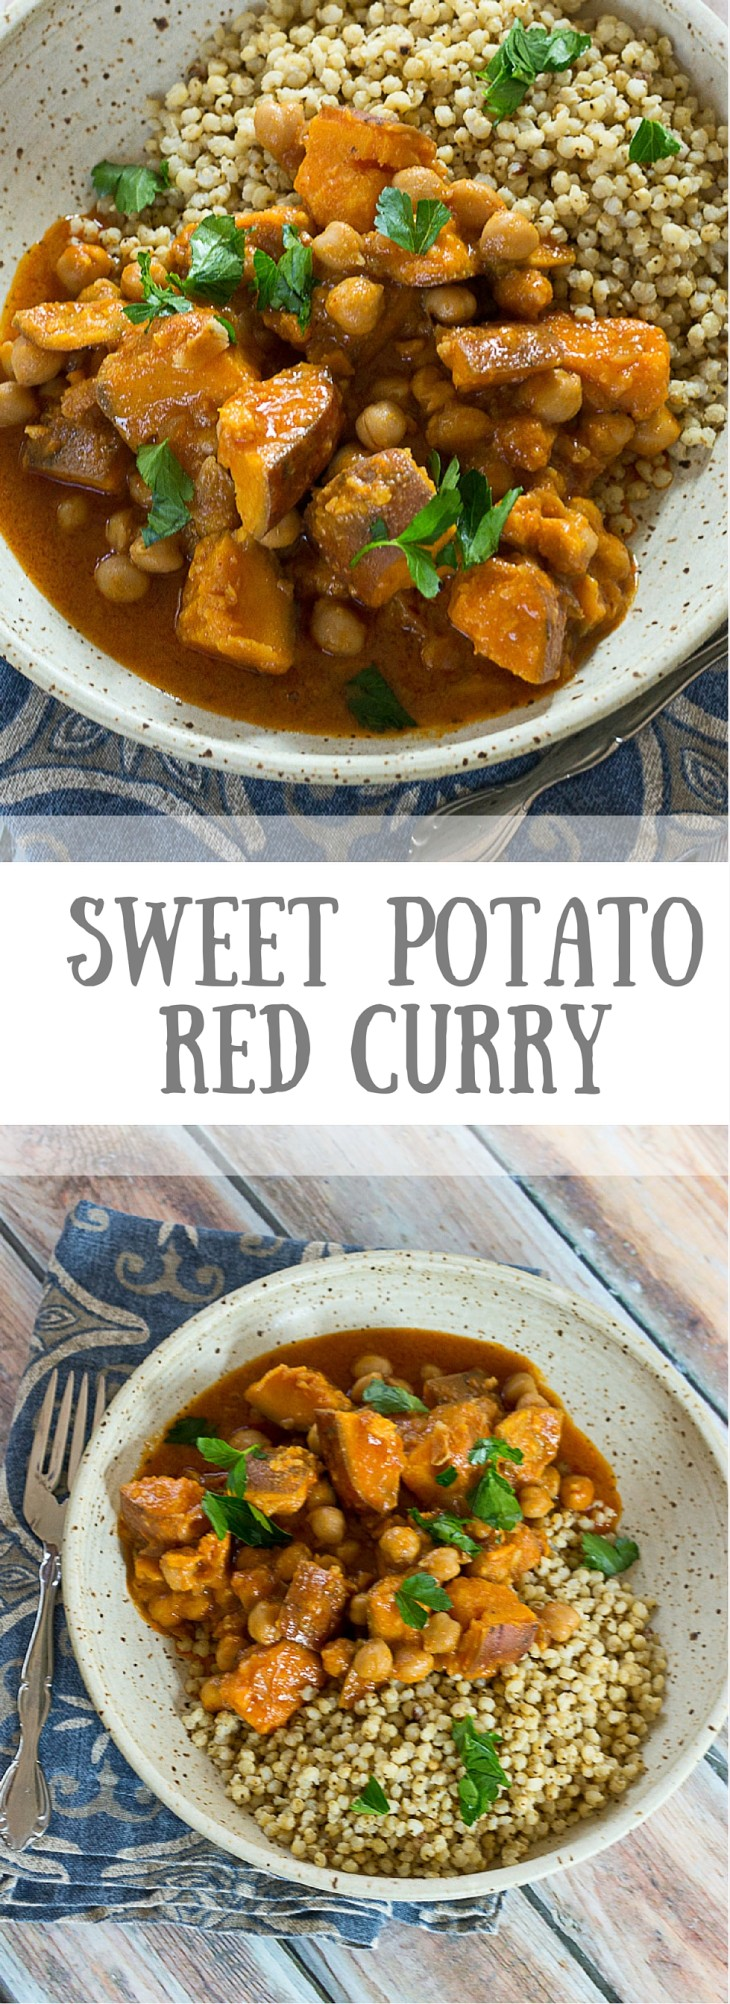 Oh oh oh, you sweet, precious Sweet Potato Red Curry, I love you. Like really really love you. This Sweet Potato Curry is crazy simple to stir together on a chilly night when all you want to do is curl up on the couch with a cuddly blanket...and a warm comforting bowl of this Sweet Potato Curry, of course. Vegan. Gluten free.